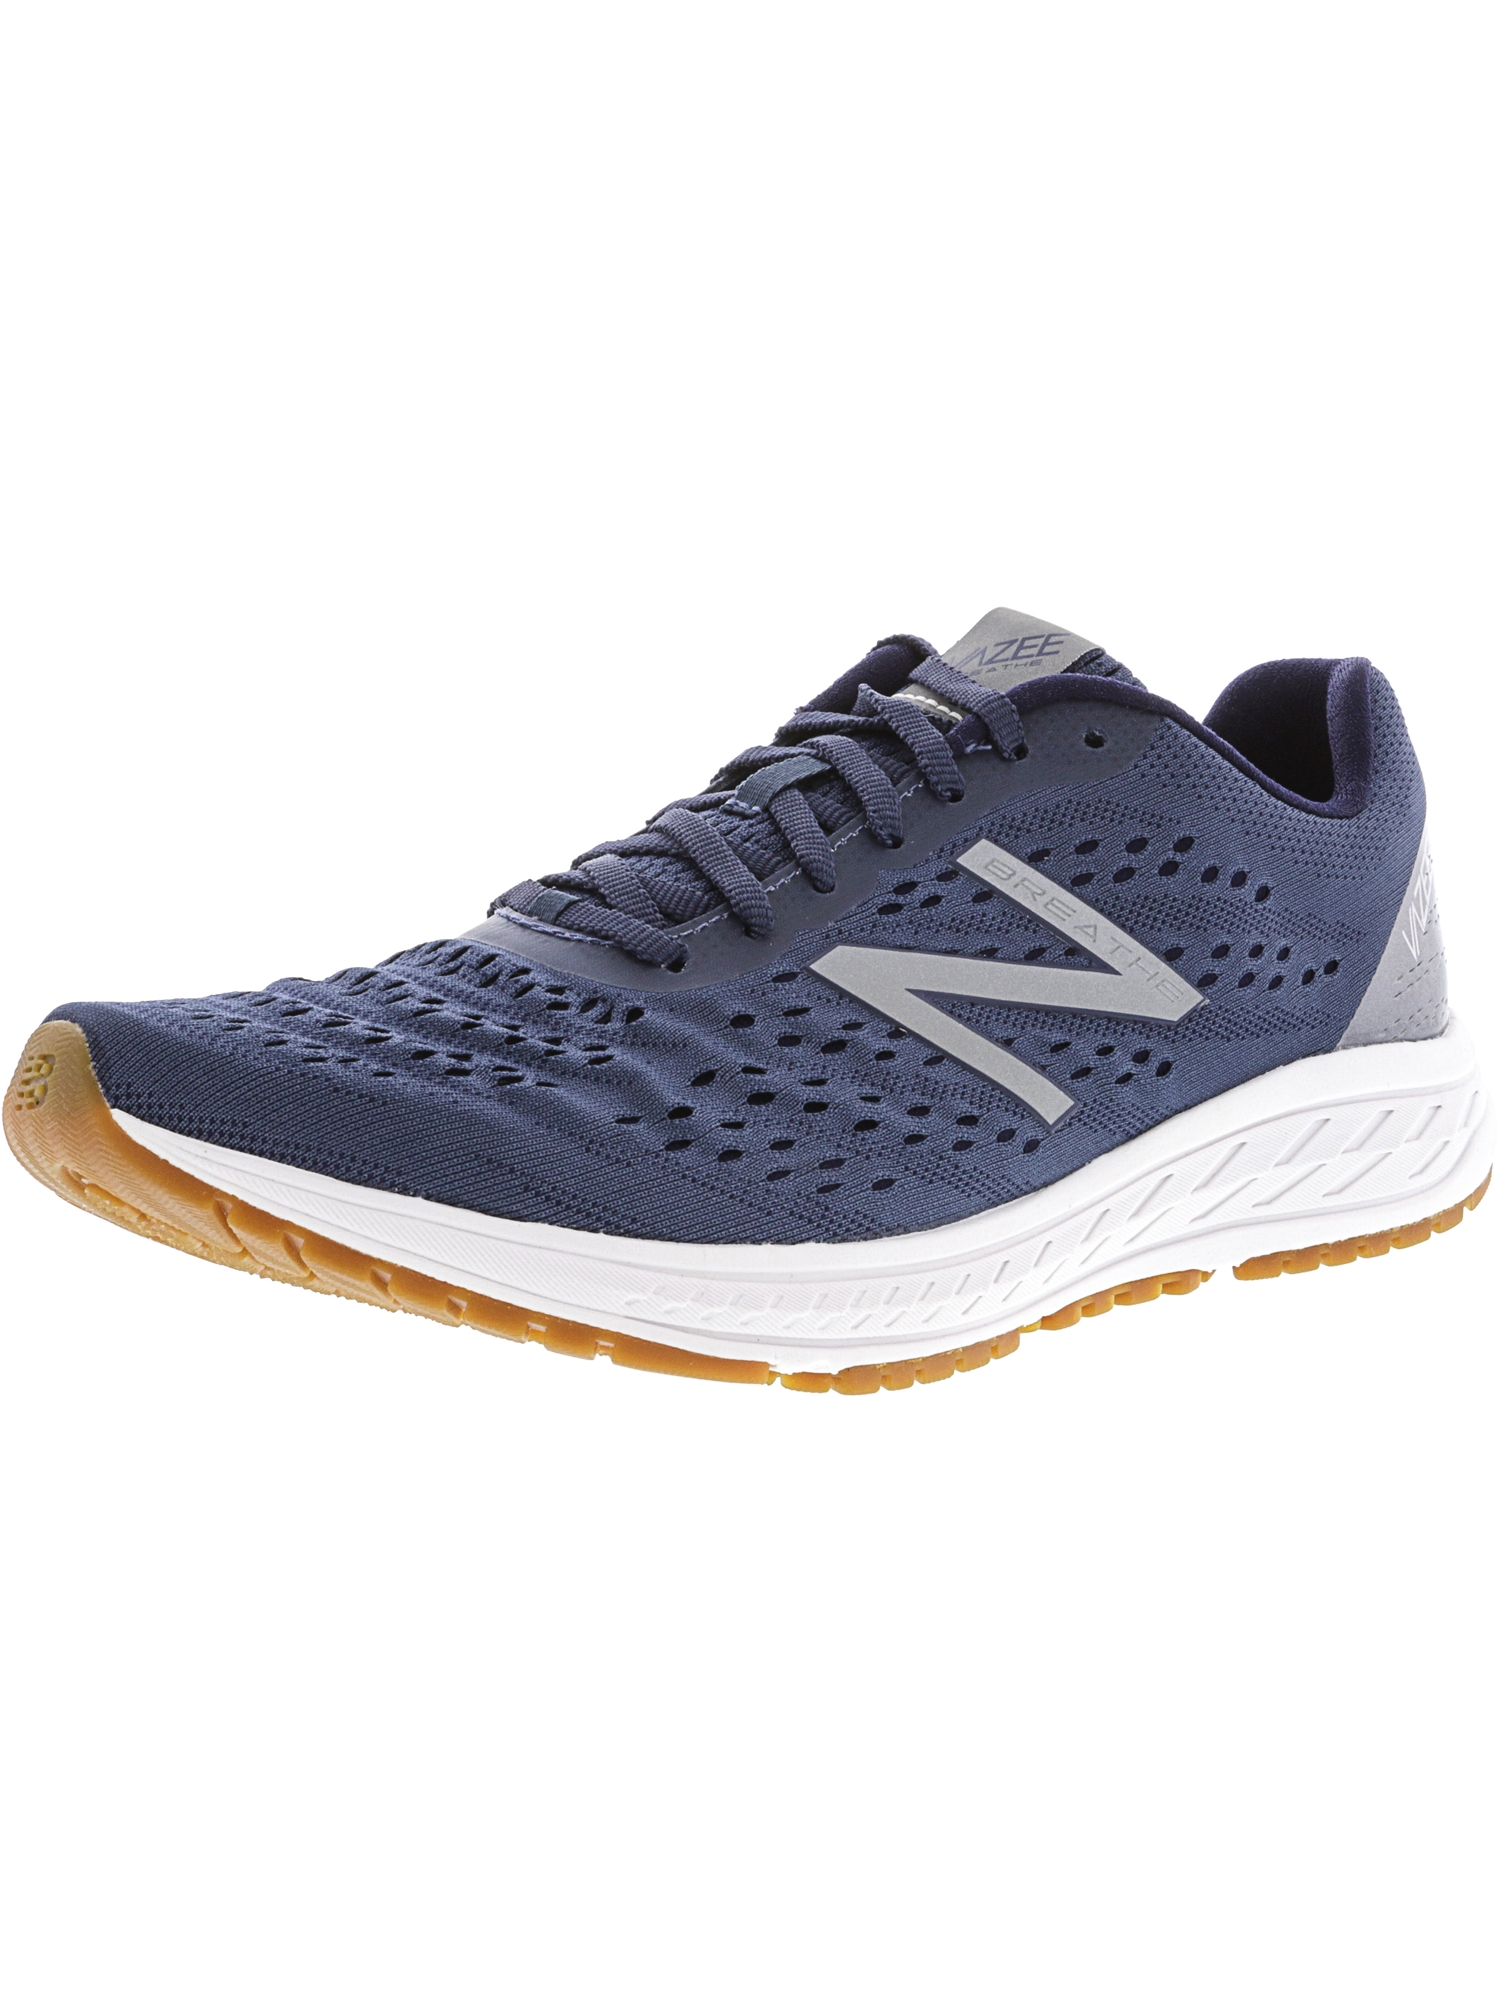 New Balance Men's Mbre Ahl2 Ankle-High Running Shoe - 9.5M